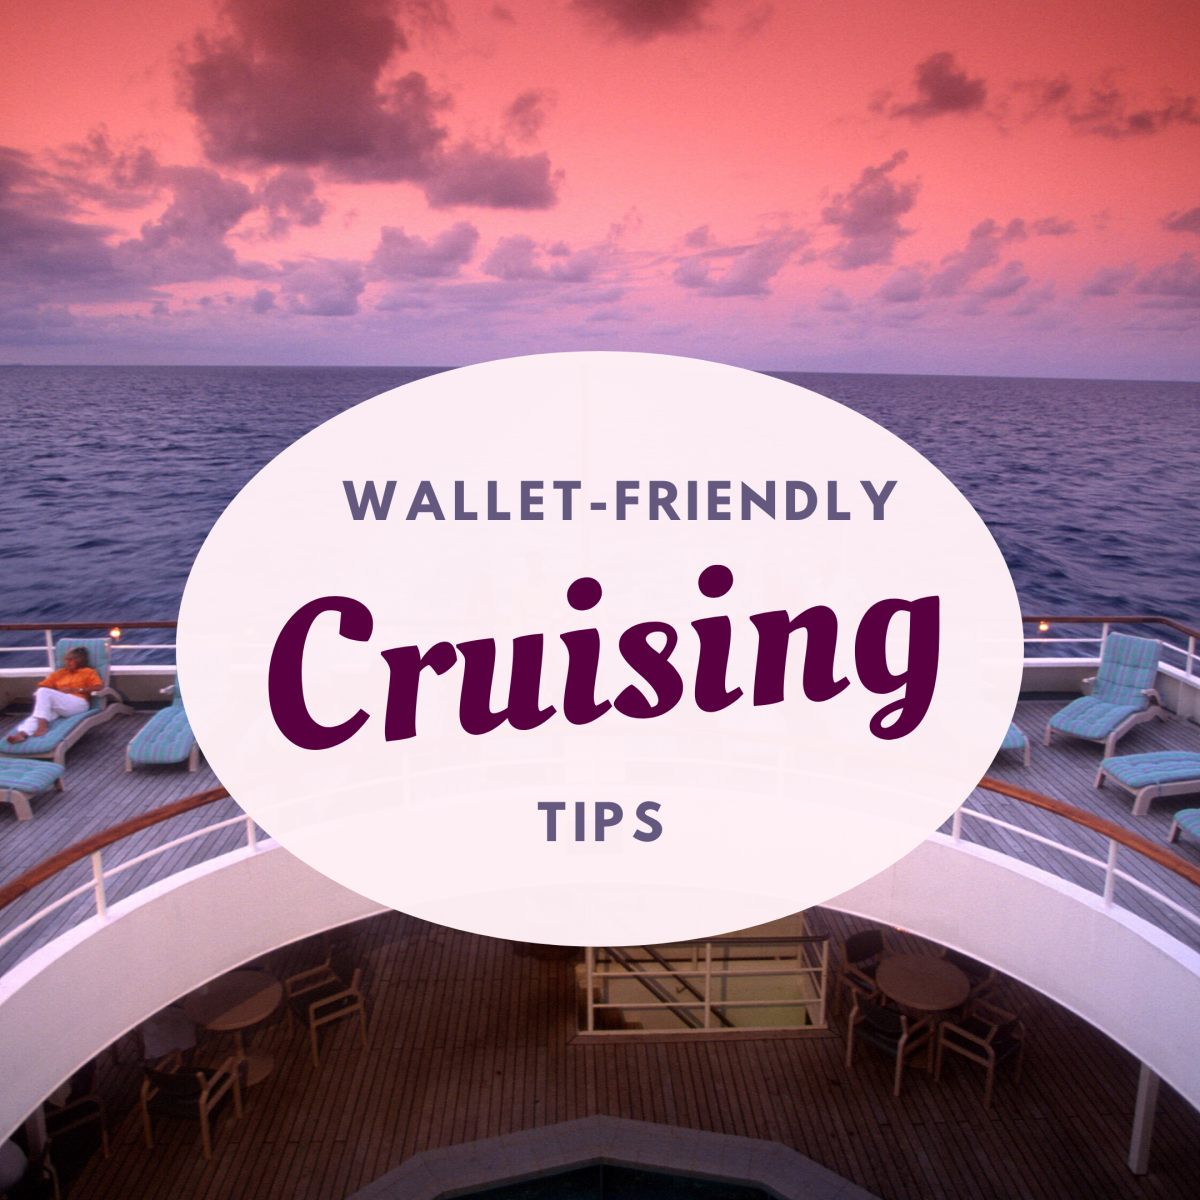 Believe it or not, it's possible to go on a cruise without breaking the bank. Here's how.